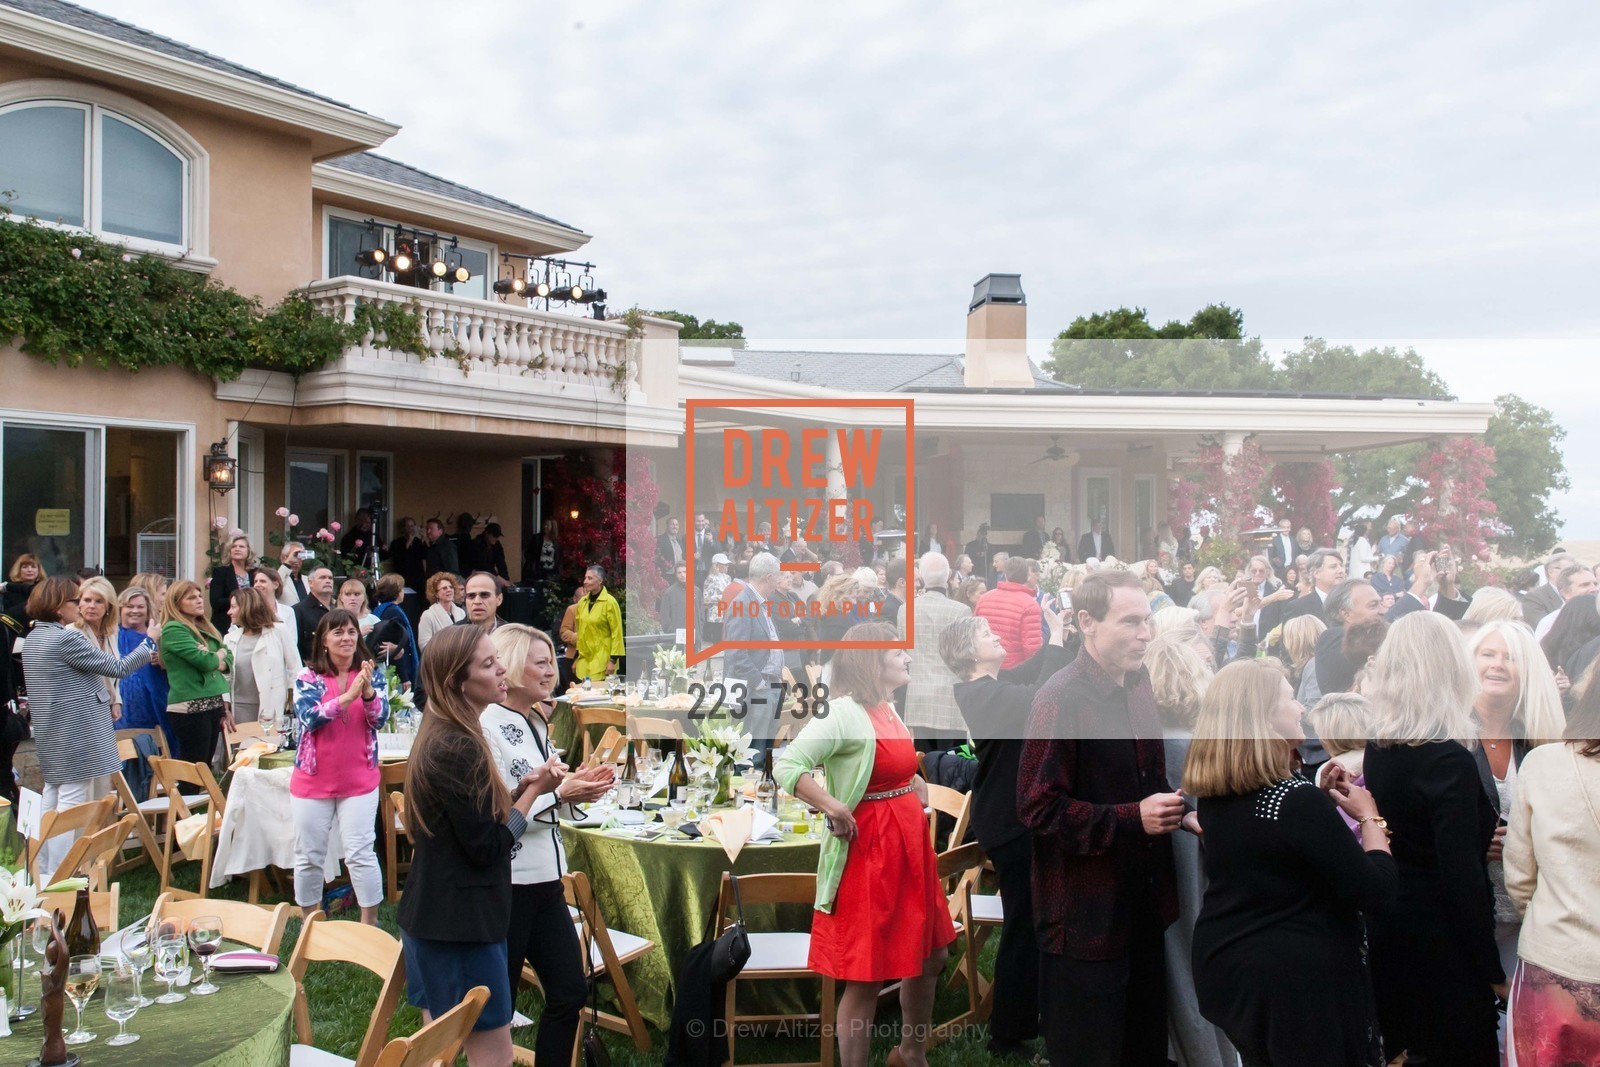 Atmosphere, LymeAid 2015, US, May 17th, 2015,Drew Altizer, Drew Altizer Photography, full-service agency, private events, San Francisco photographer, photographer california